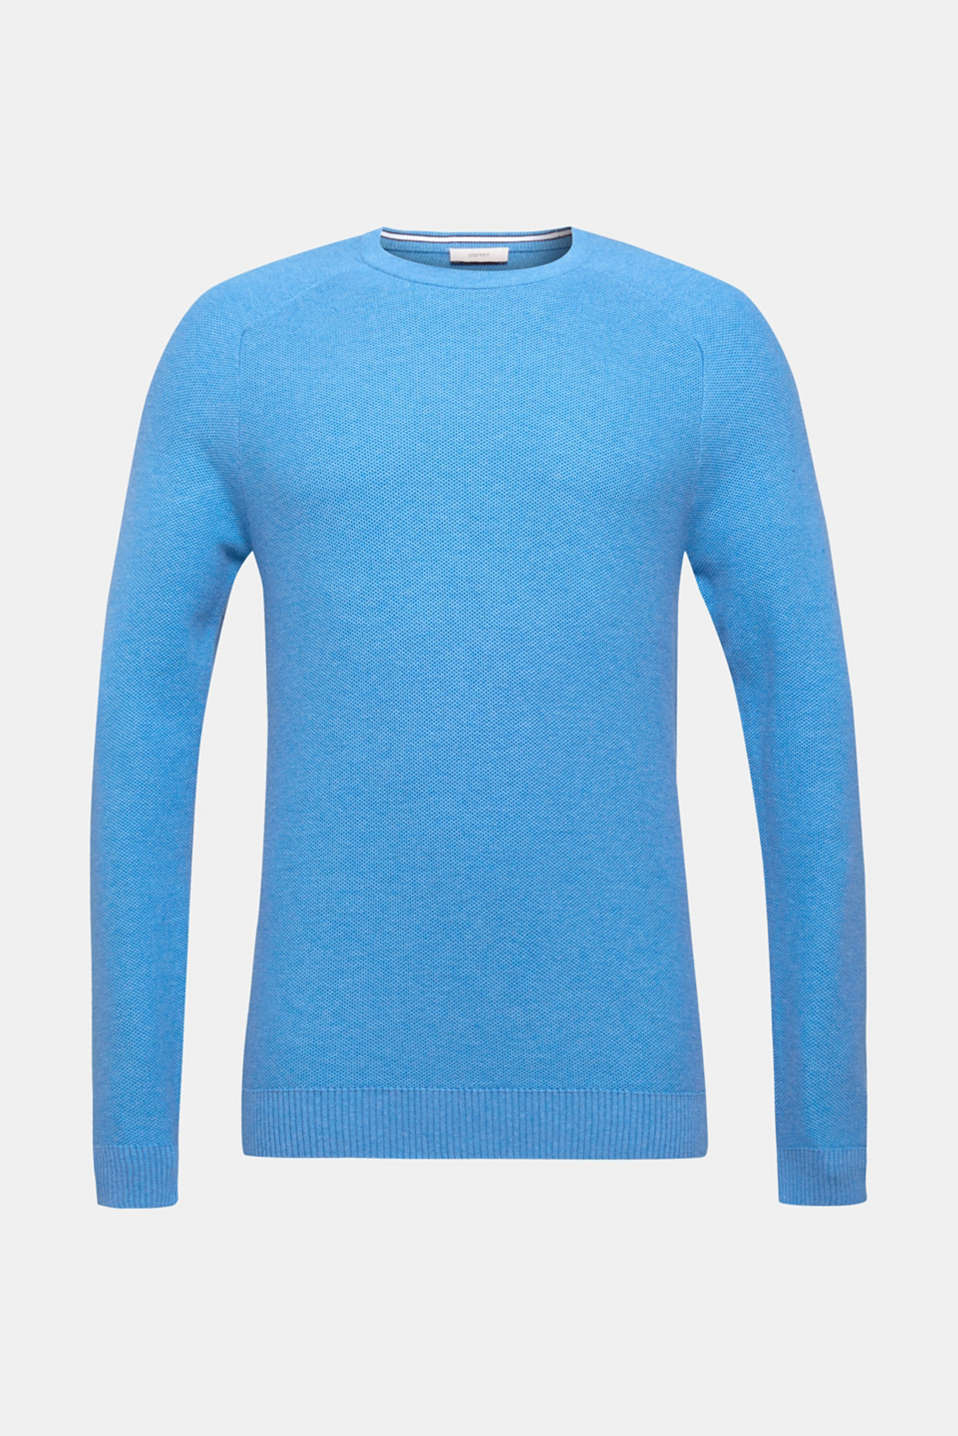 Sweaters, BRIGHT BLUE 5, detail image number 6